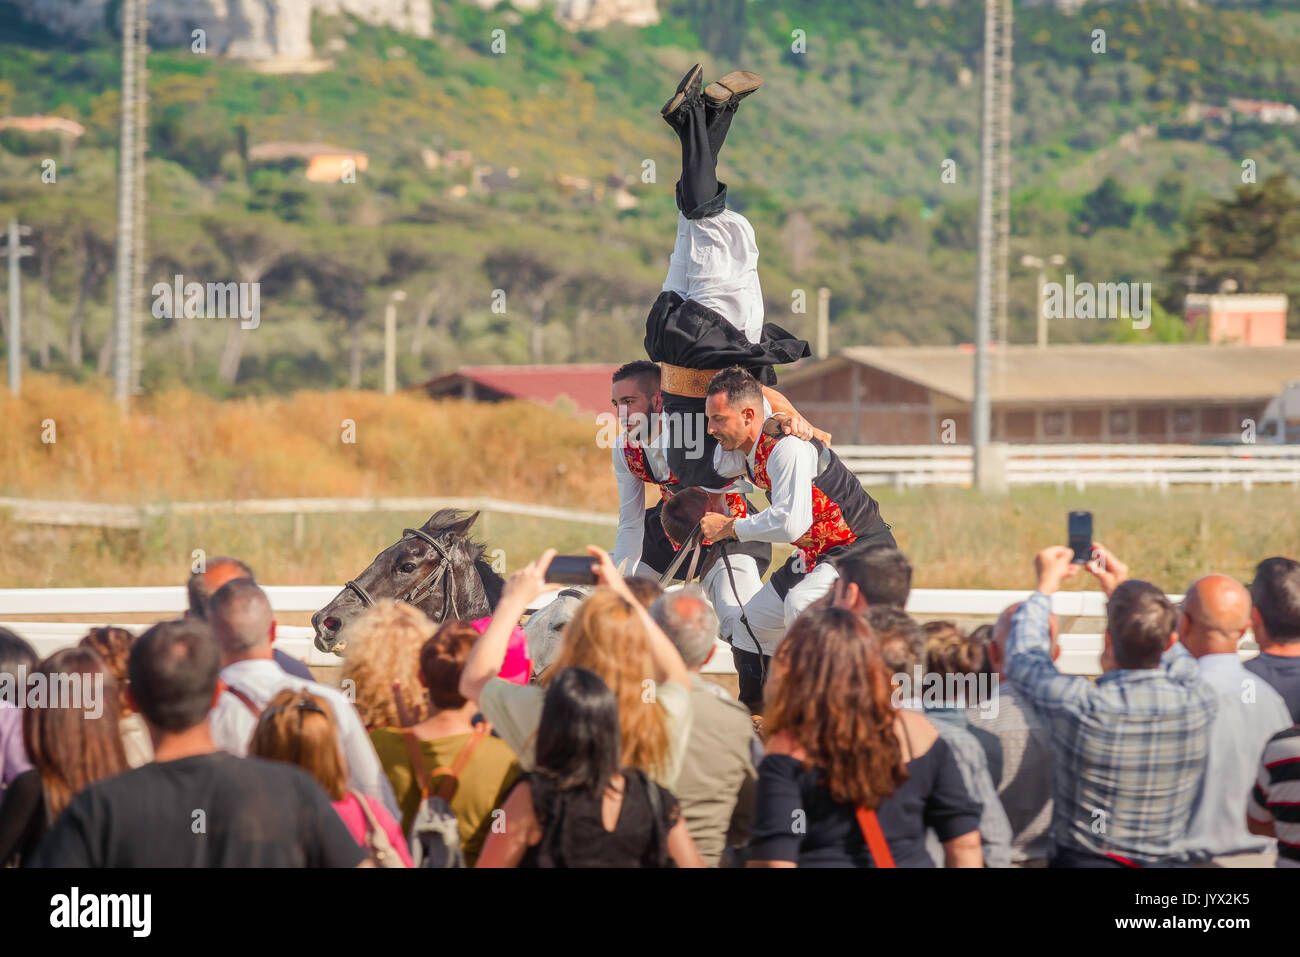 Festival Sardinia, a three man team perform a traditional horse riding feat at the Ippodrome race track during the Cavalcata festival in Sassari. - Stock Image